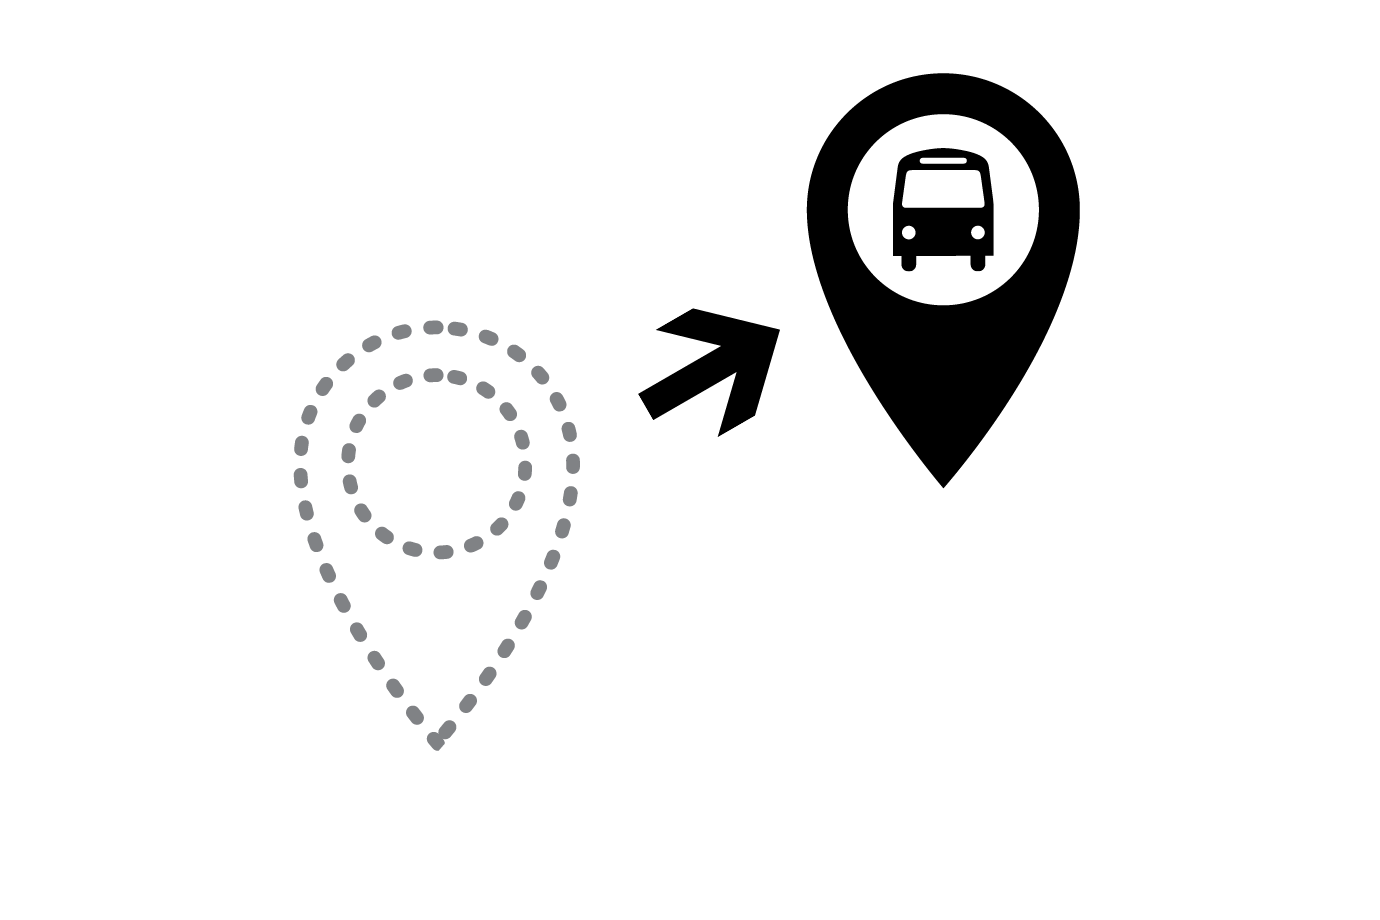 graphic indicating relocated stop